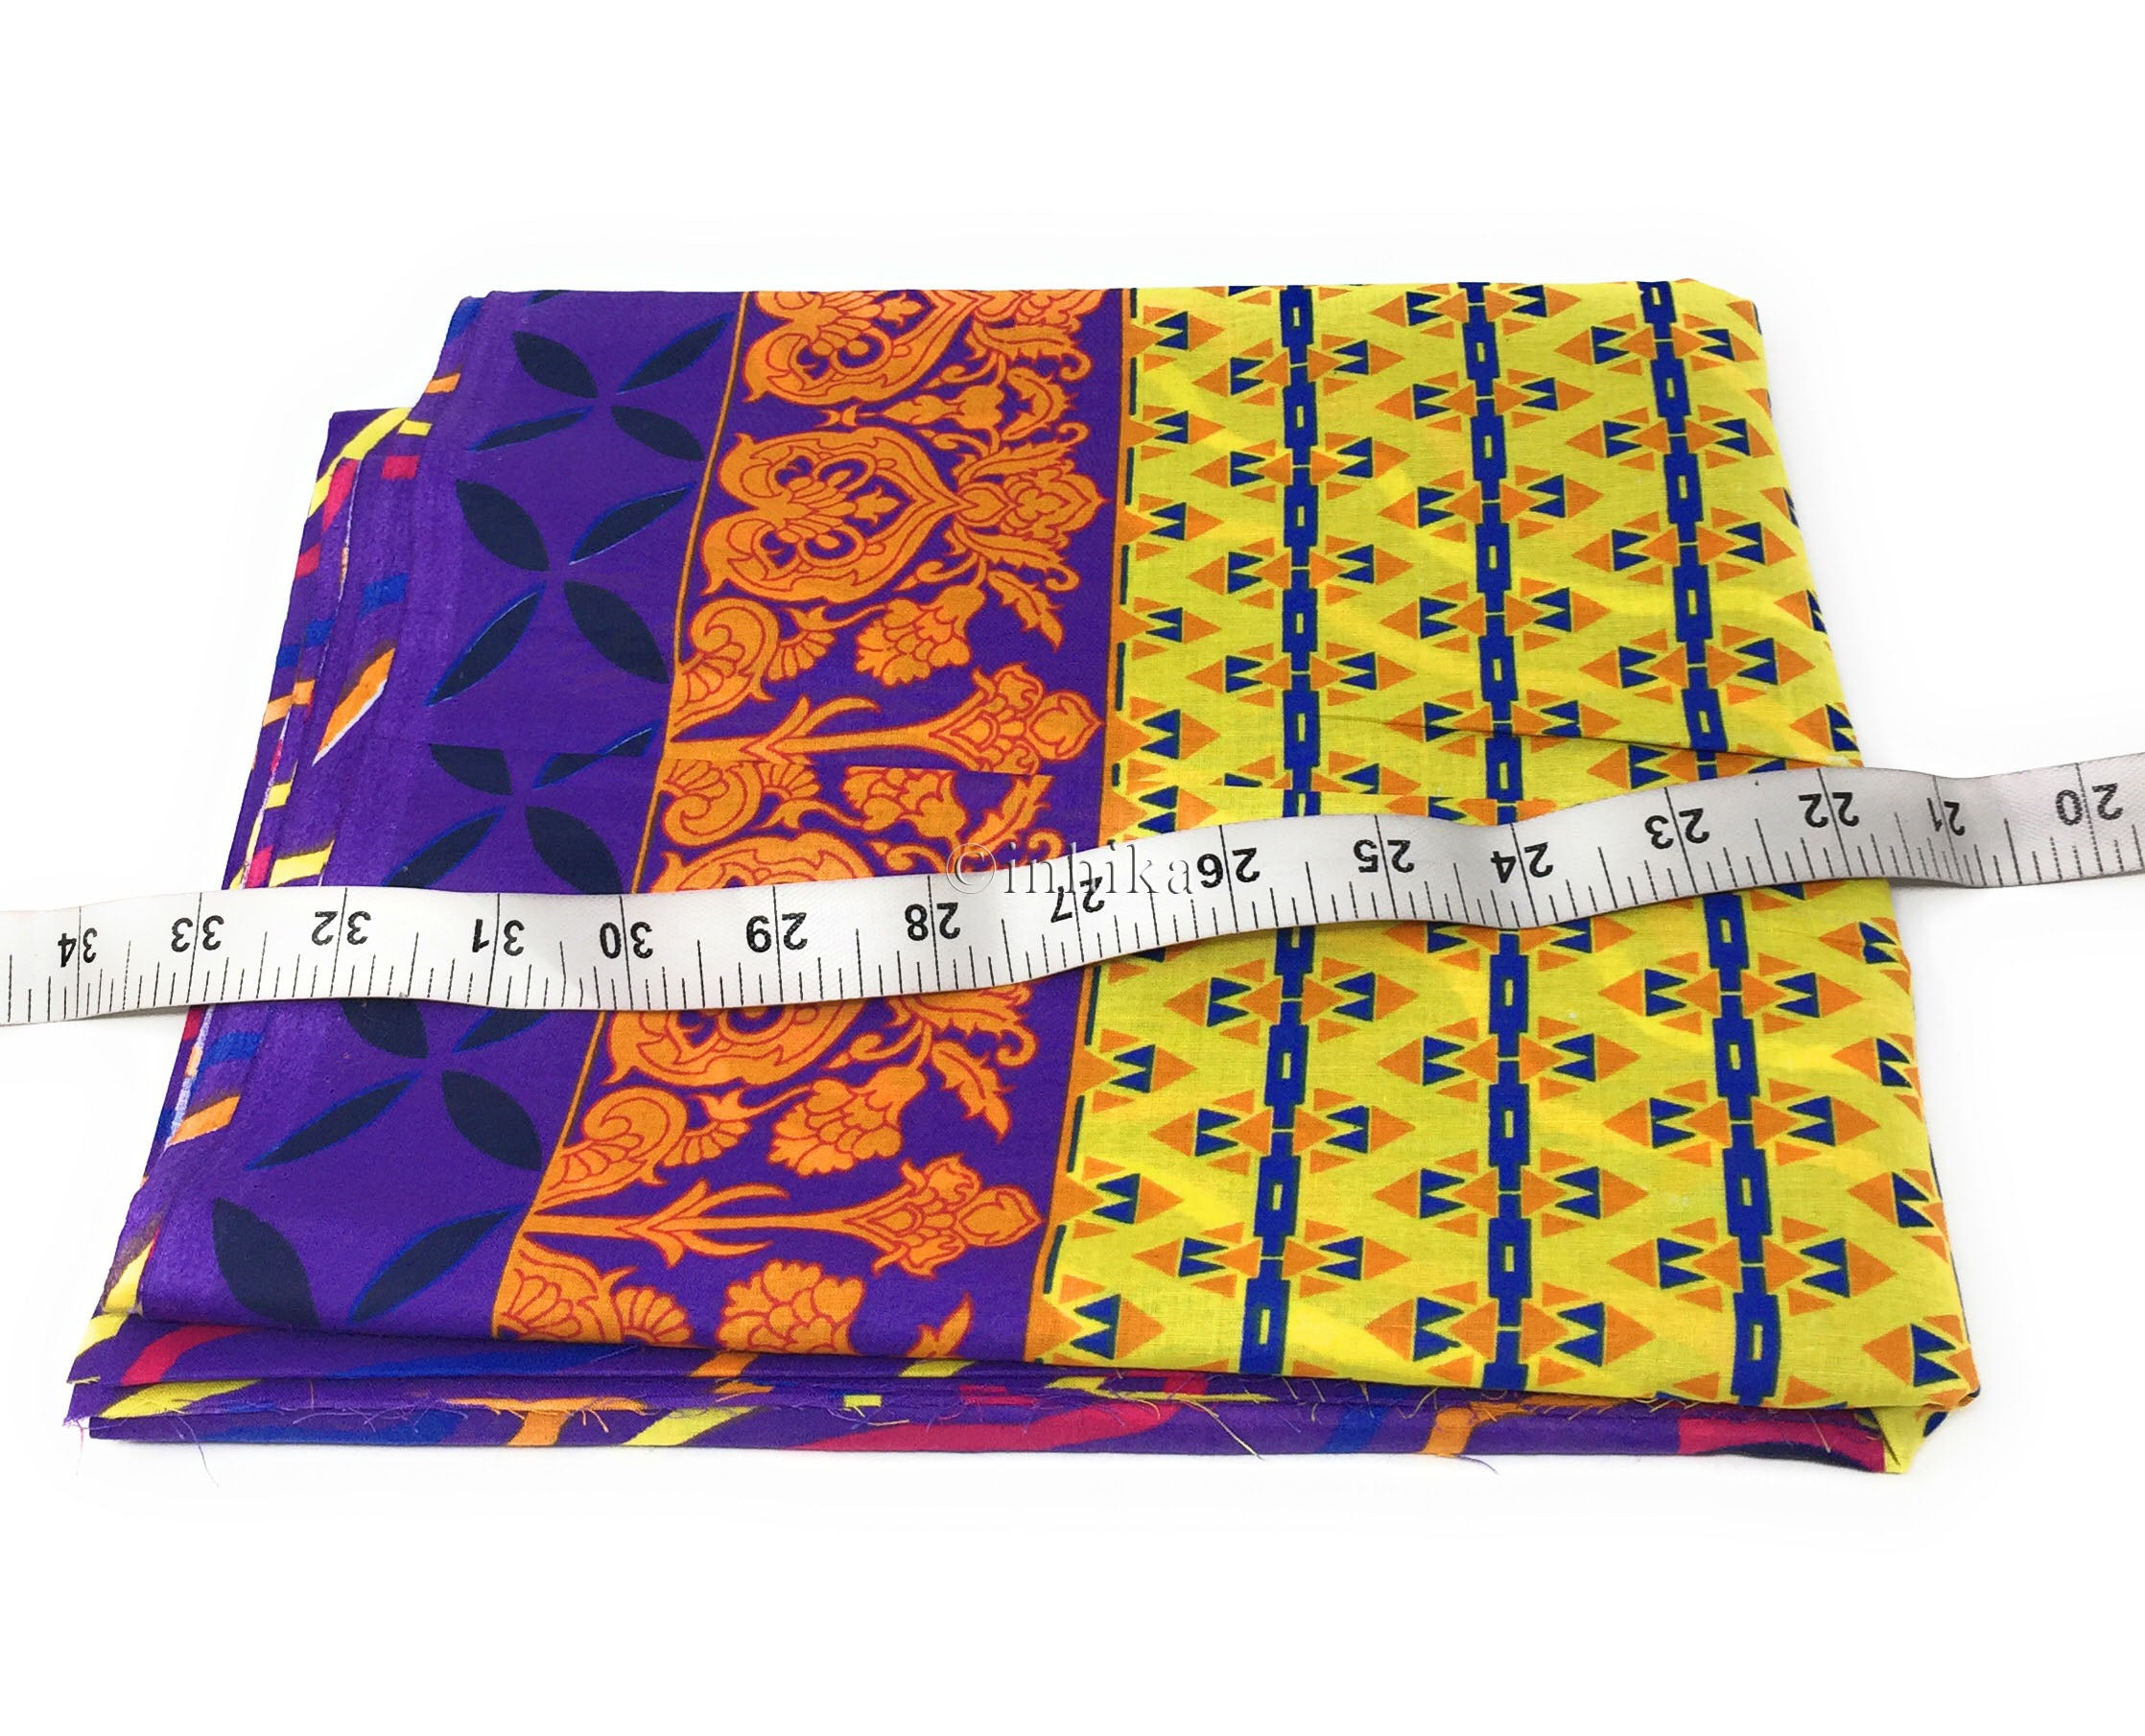 Pure Cotton, Printed colour fast leheriya design with panel, purple colour